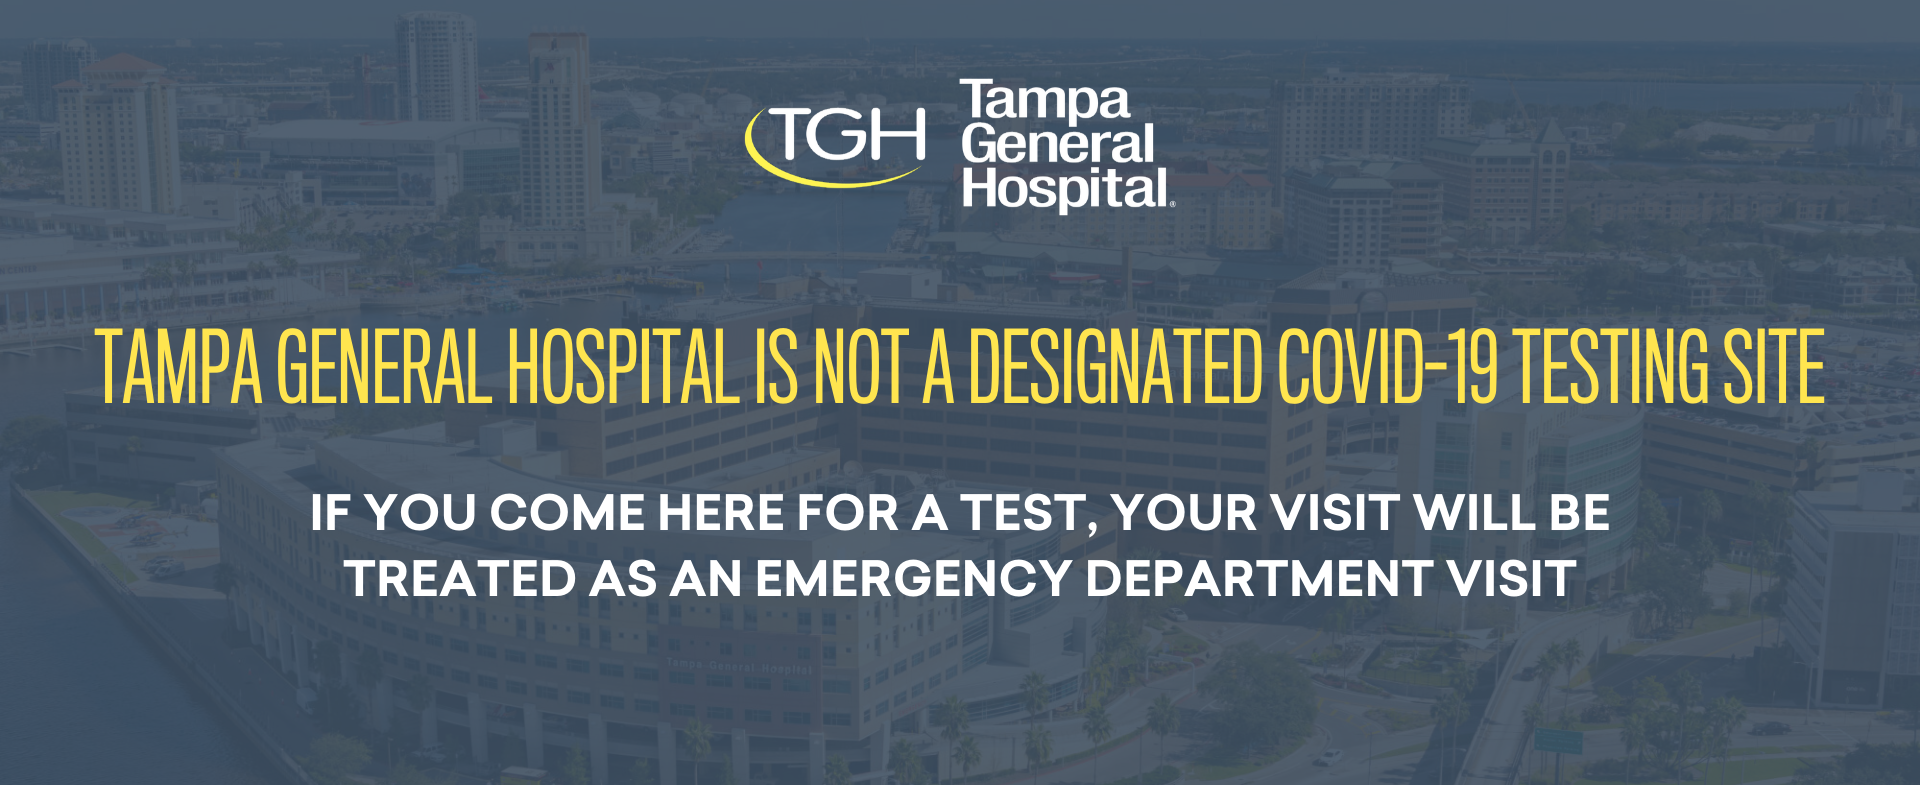 Tampa General Hospital is not a designated COVID-19 testing site. If you come here for a test, it will be treated as an emergency department visit.